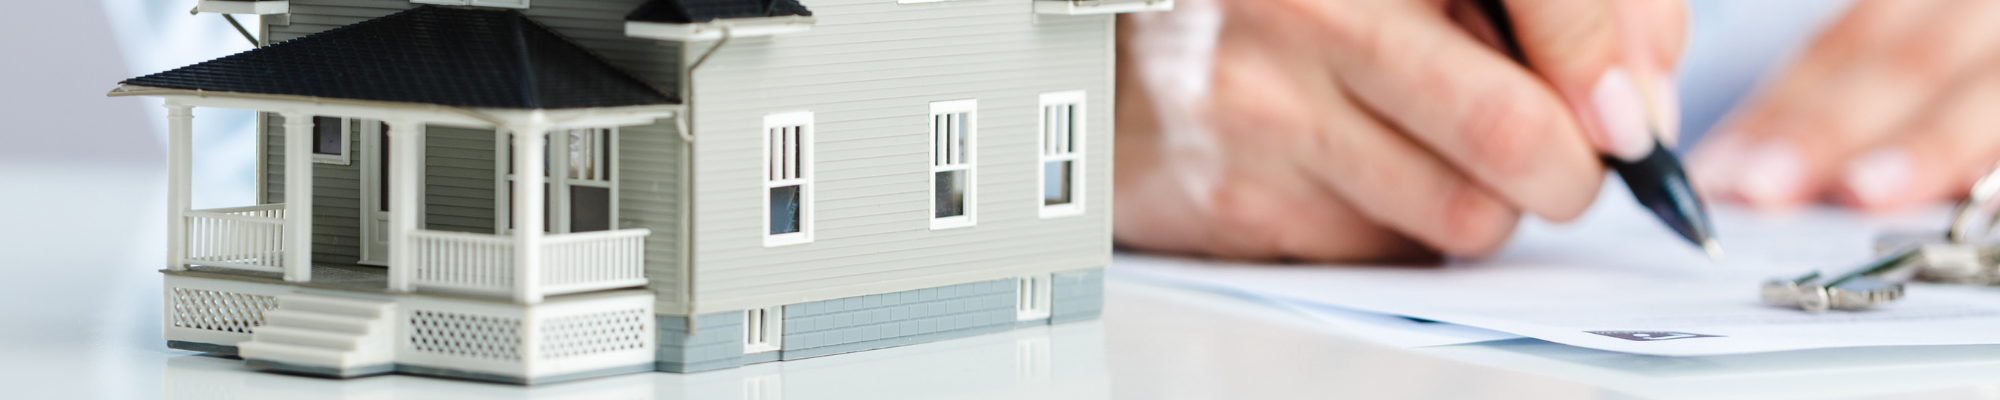 Landlord Insurance: Do You Have The Right Cover On Your Rental Property?